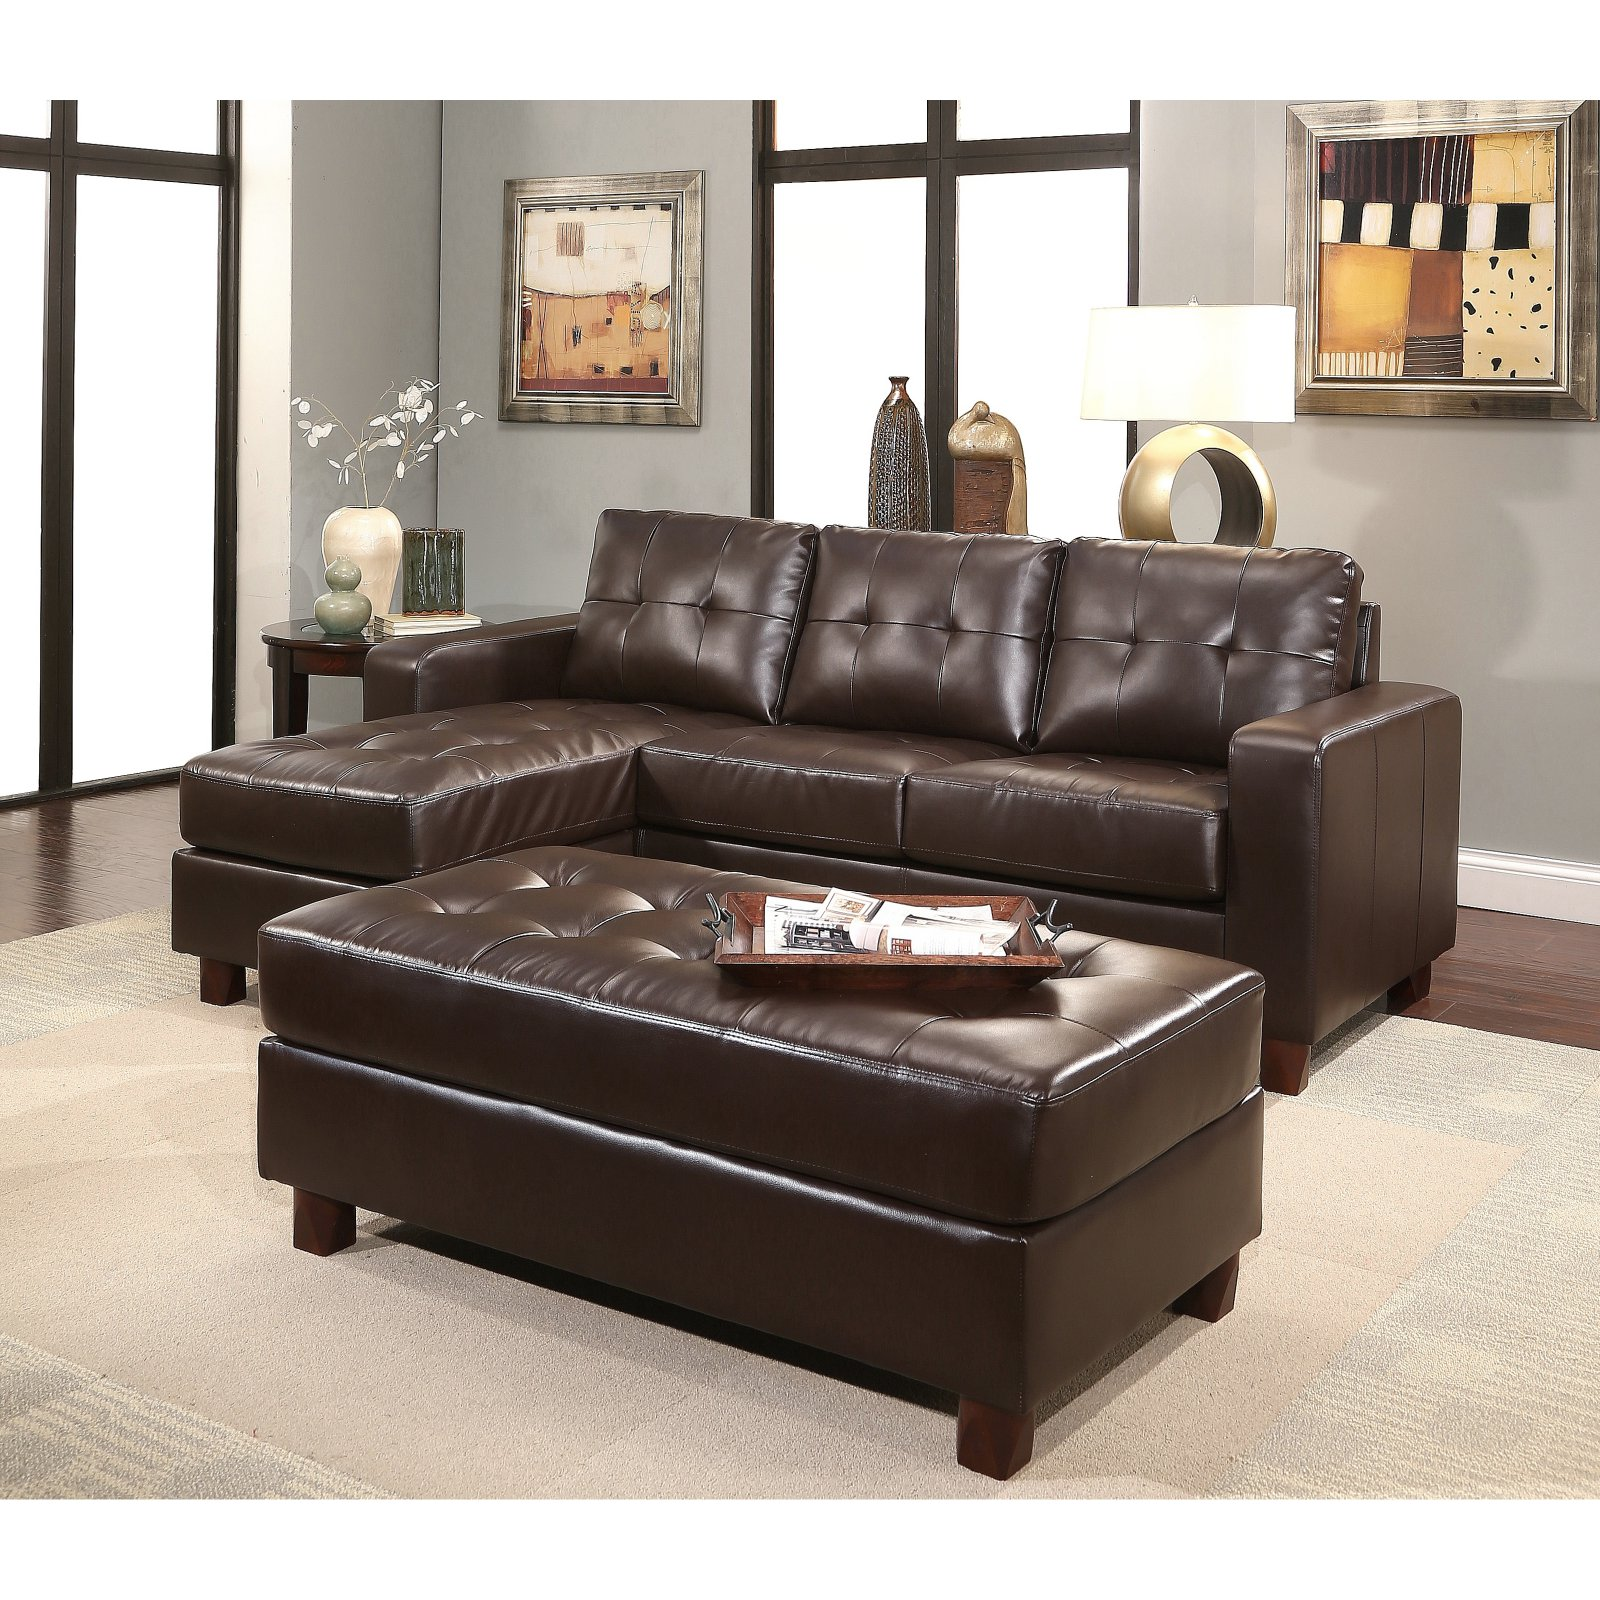 Abbyson Taylor Leather Reversible Sectional and Ottoman